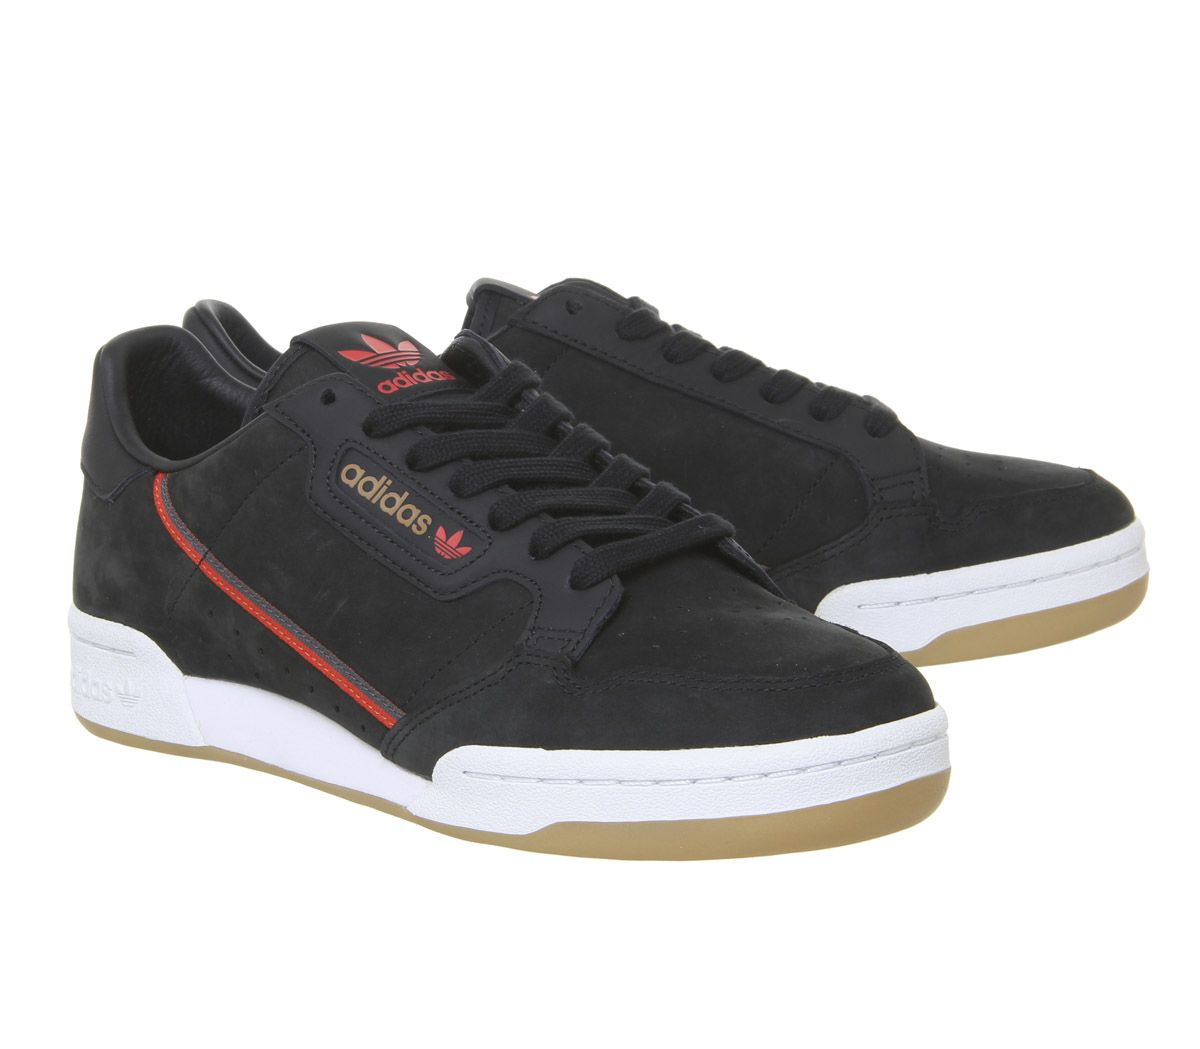 brand new eaf30 ae1f0 Sentinel Adidas Continental 80S Trainers Core Black Red Grey Gum Tfl  Trainers Shoes